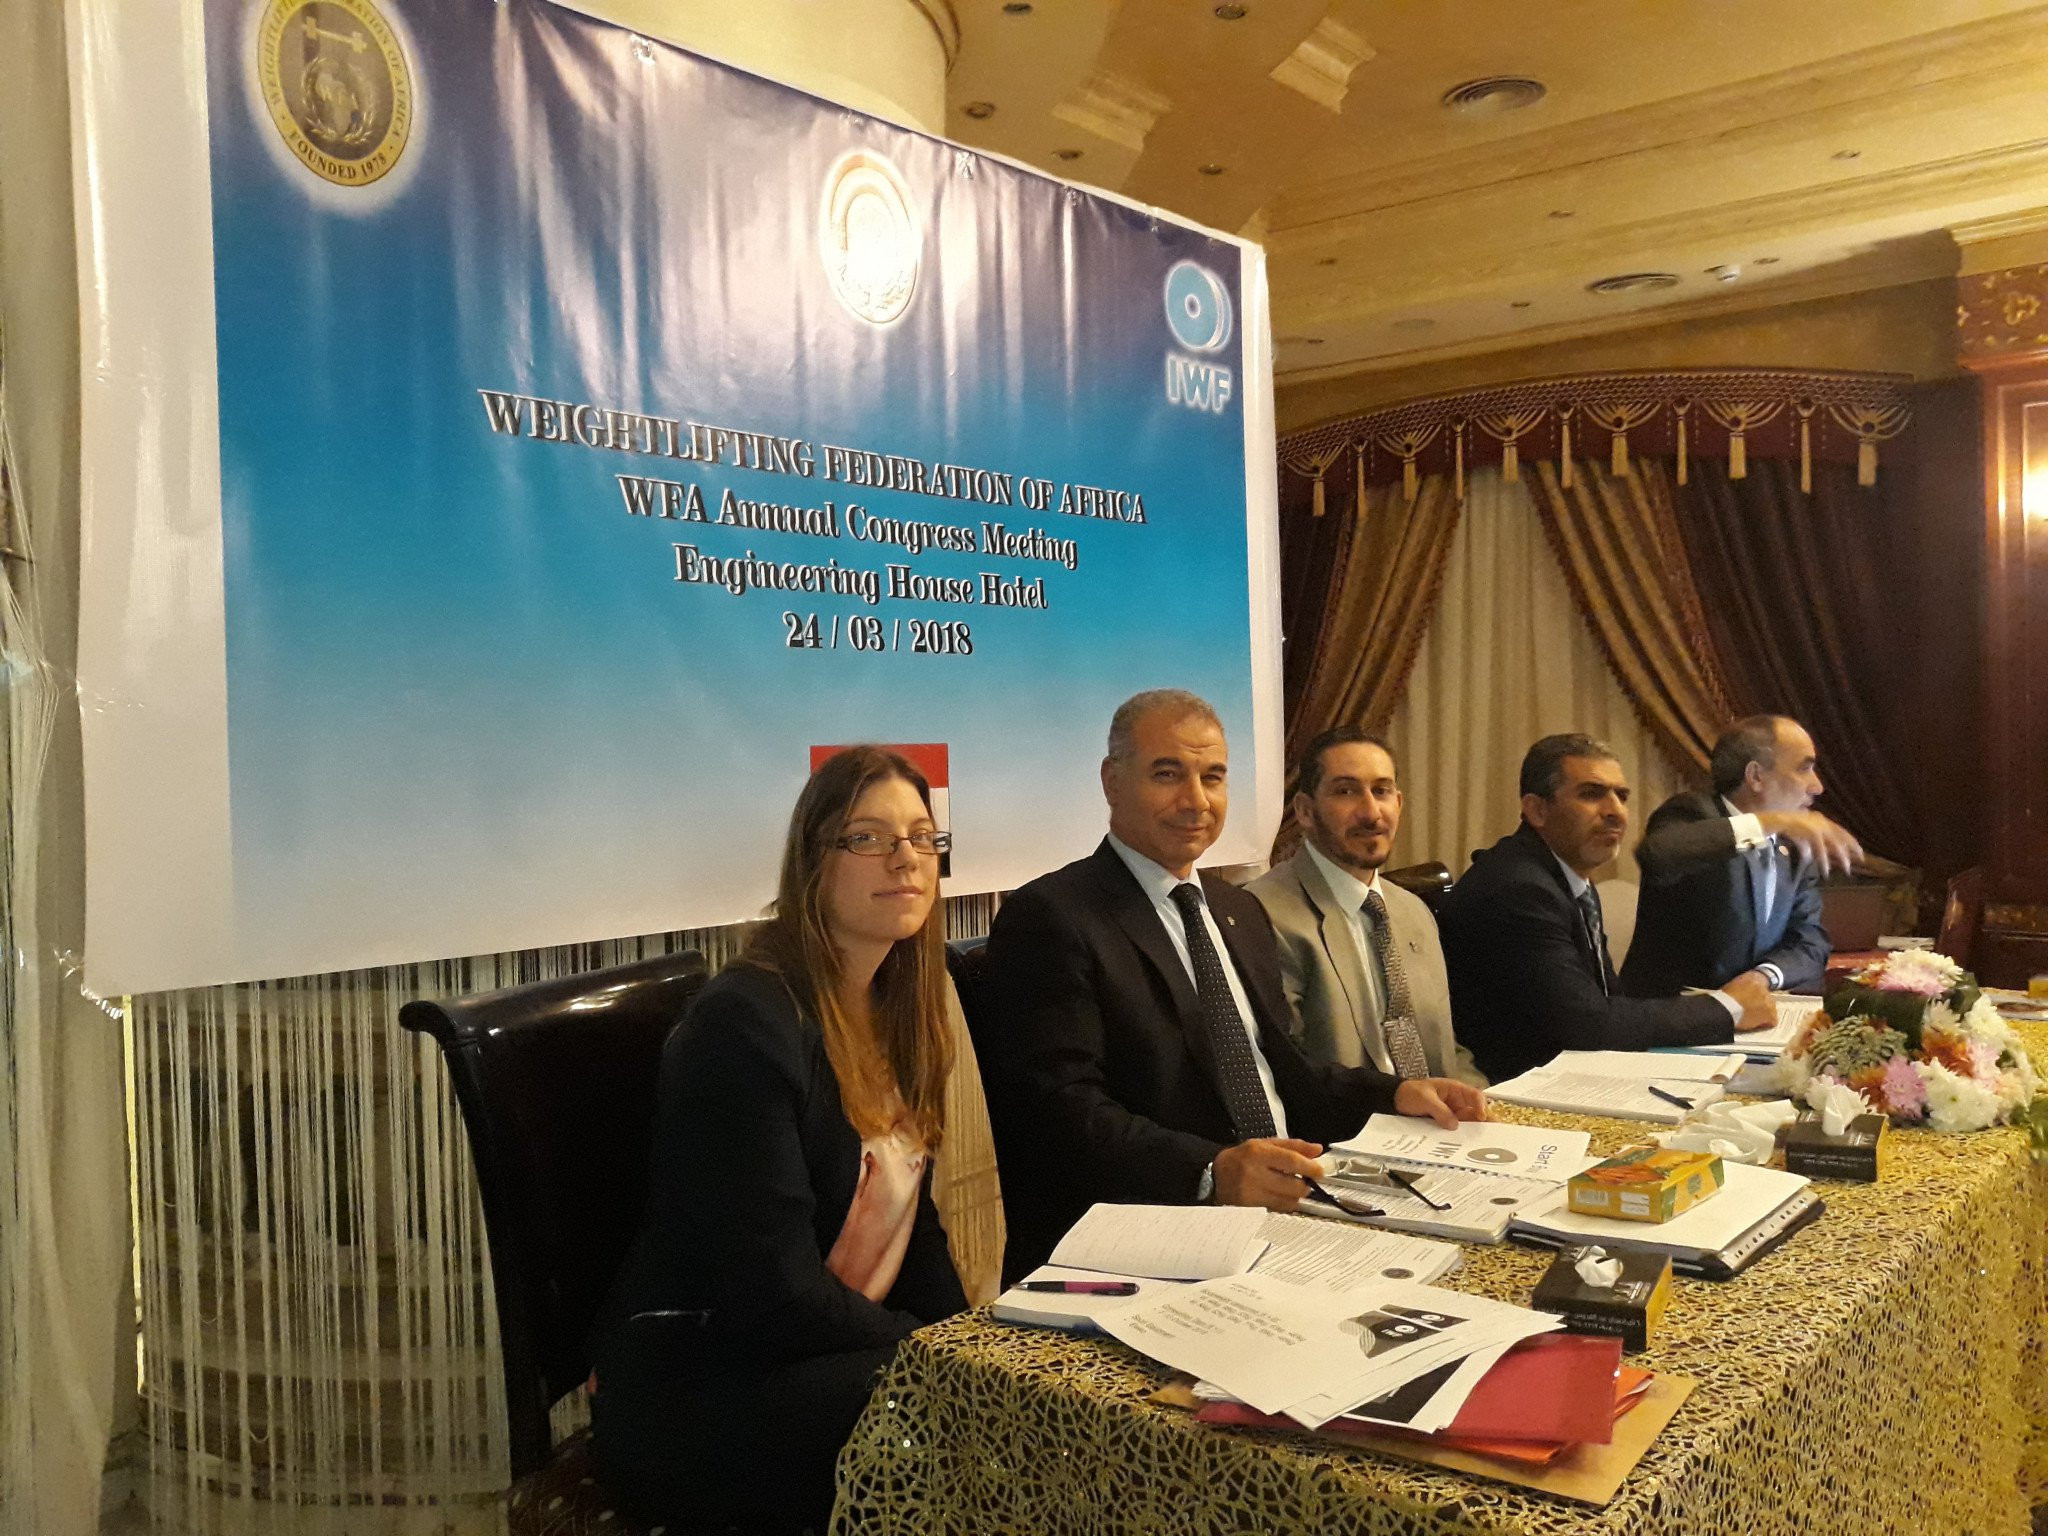 Ex-Egyptian Weightlifting Federation President Mahmoud Mahgoub, second from left, sits on the IWF Executive Board ©IWF